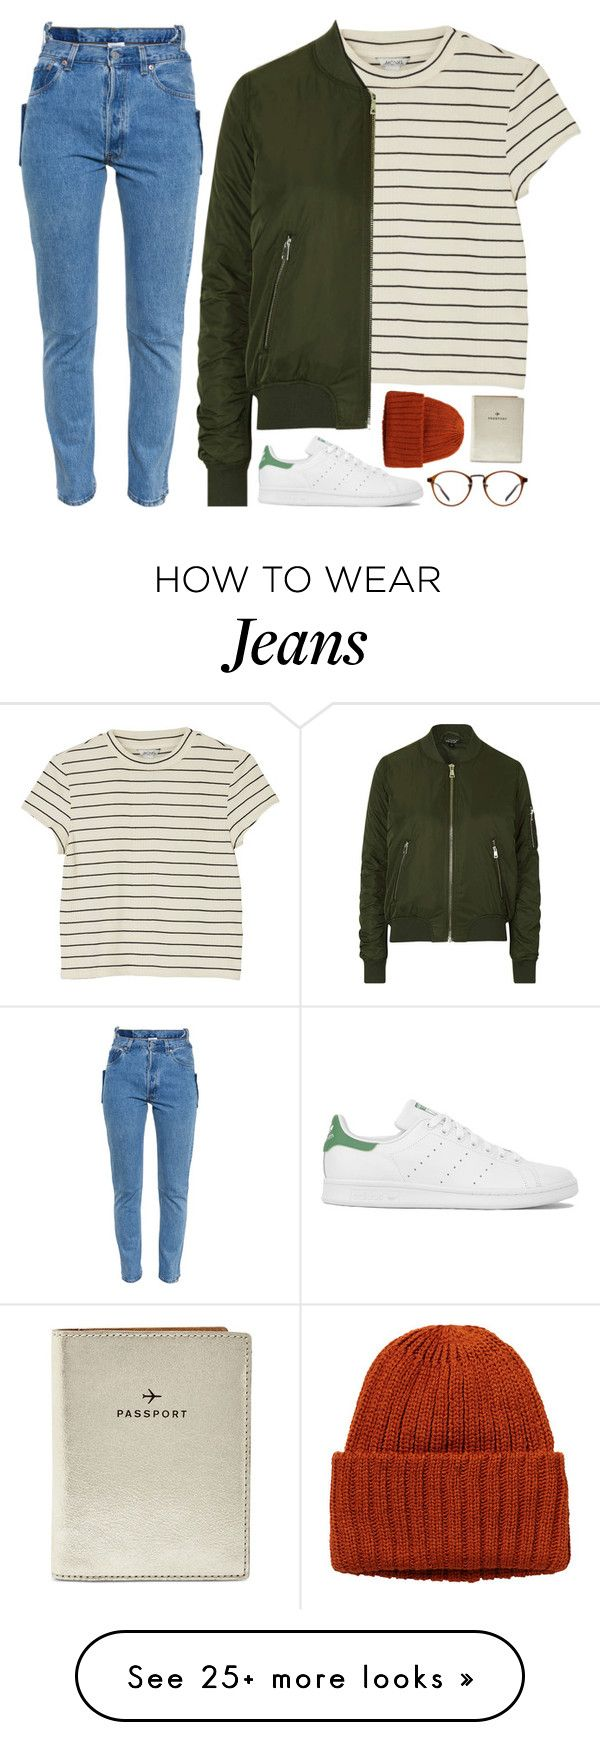 """Margot"" by sulk-y on Polyvore featuring Monki, Topshop, adidas, FOSSIL and Vetements"